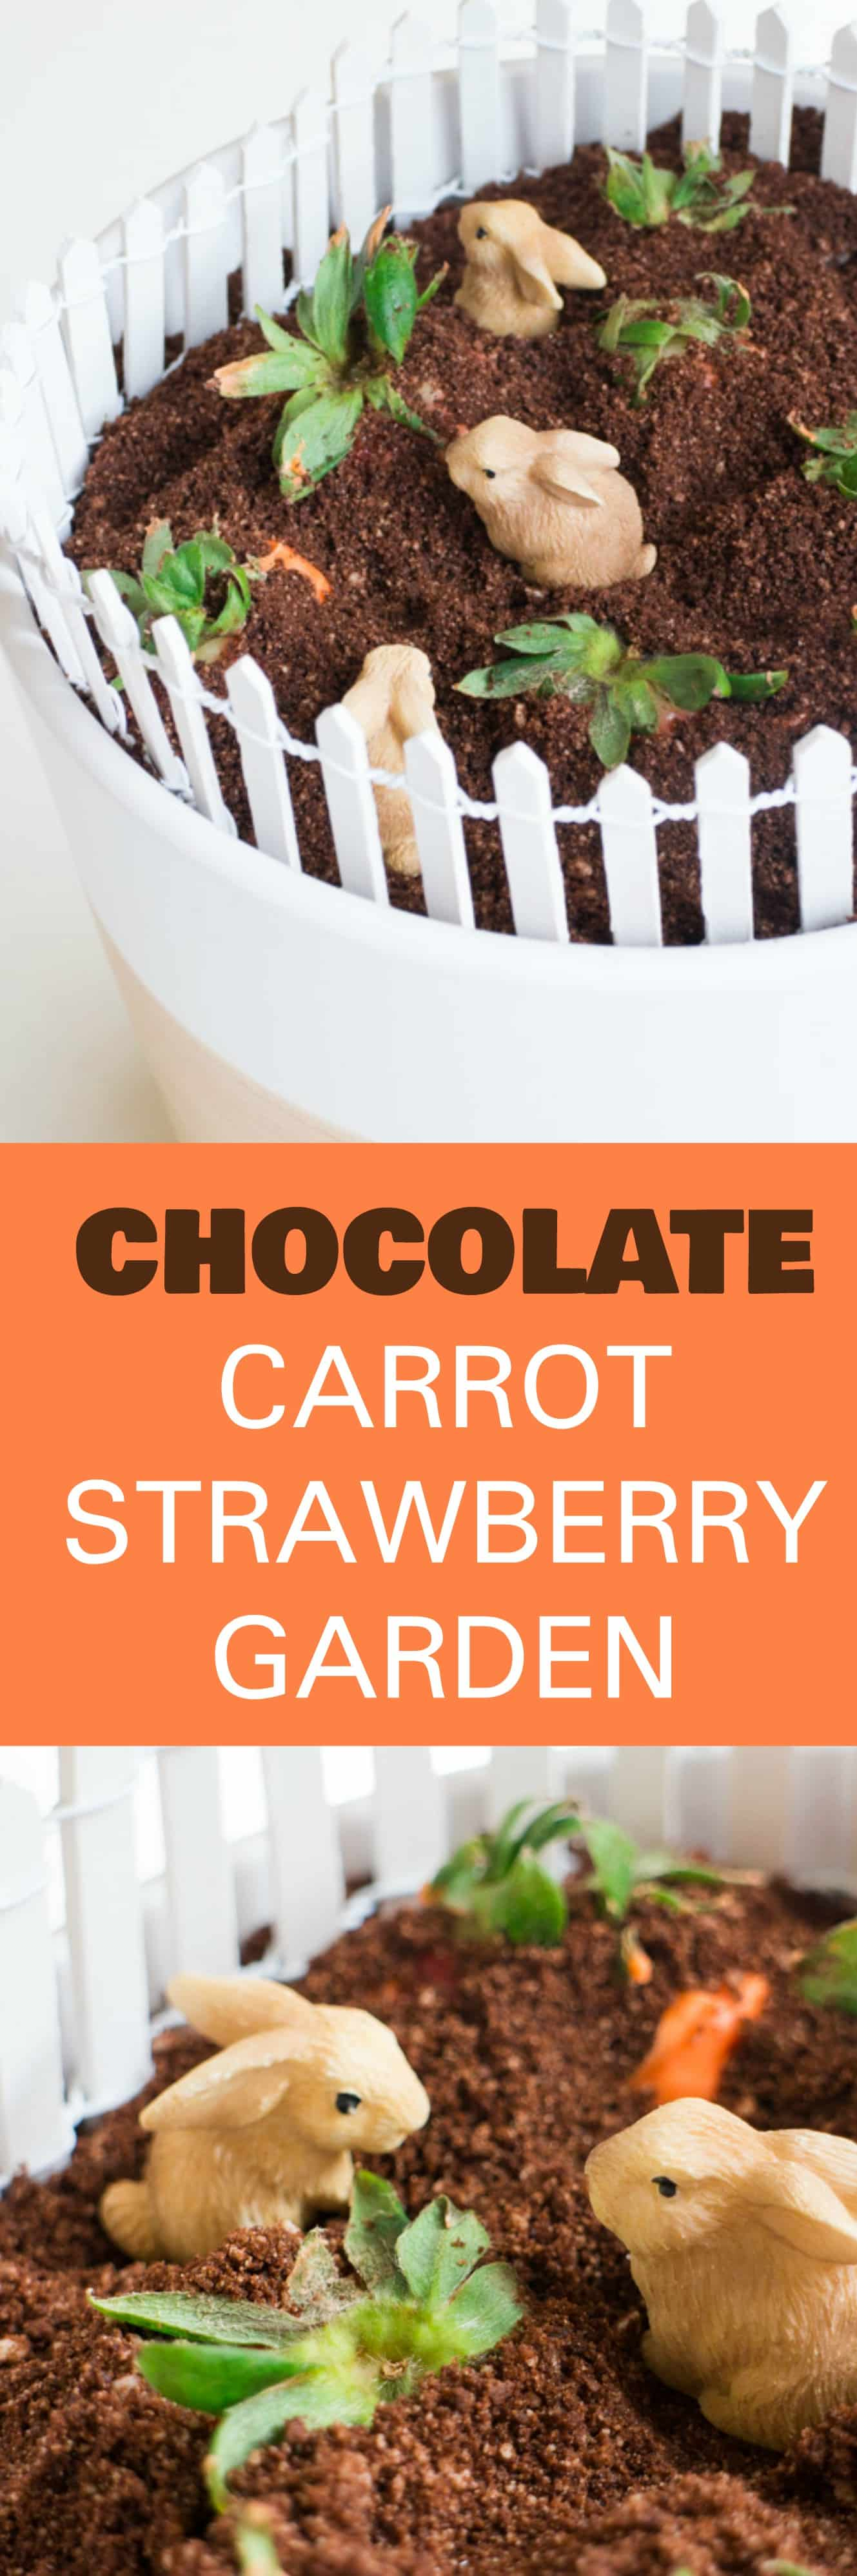 EDIBLE Chocolate Carrot Strawberry GARDEN is the perfect DIY Mother's day dessert craft from kids! This simple craft uses chocolate cookies for dirt and chocolate covered strawberries for carrots! Great for toddlers,  preschoolers and older children to make for Mothers and Grandmas who love to garden!